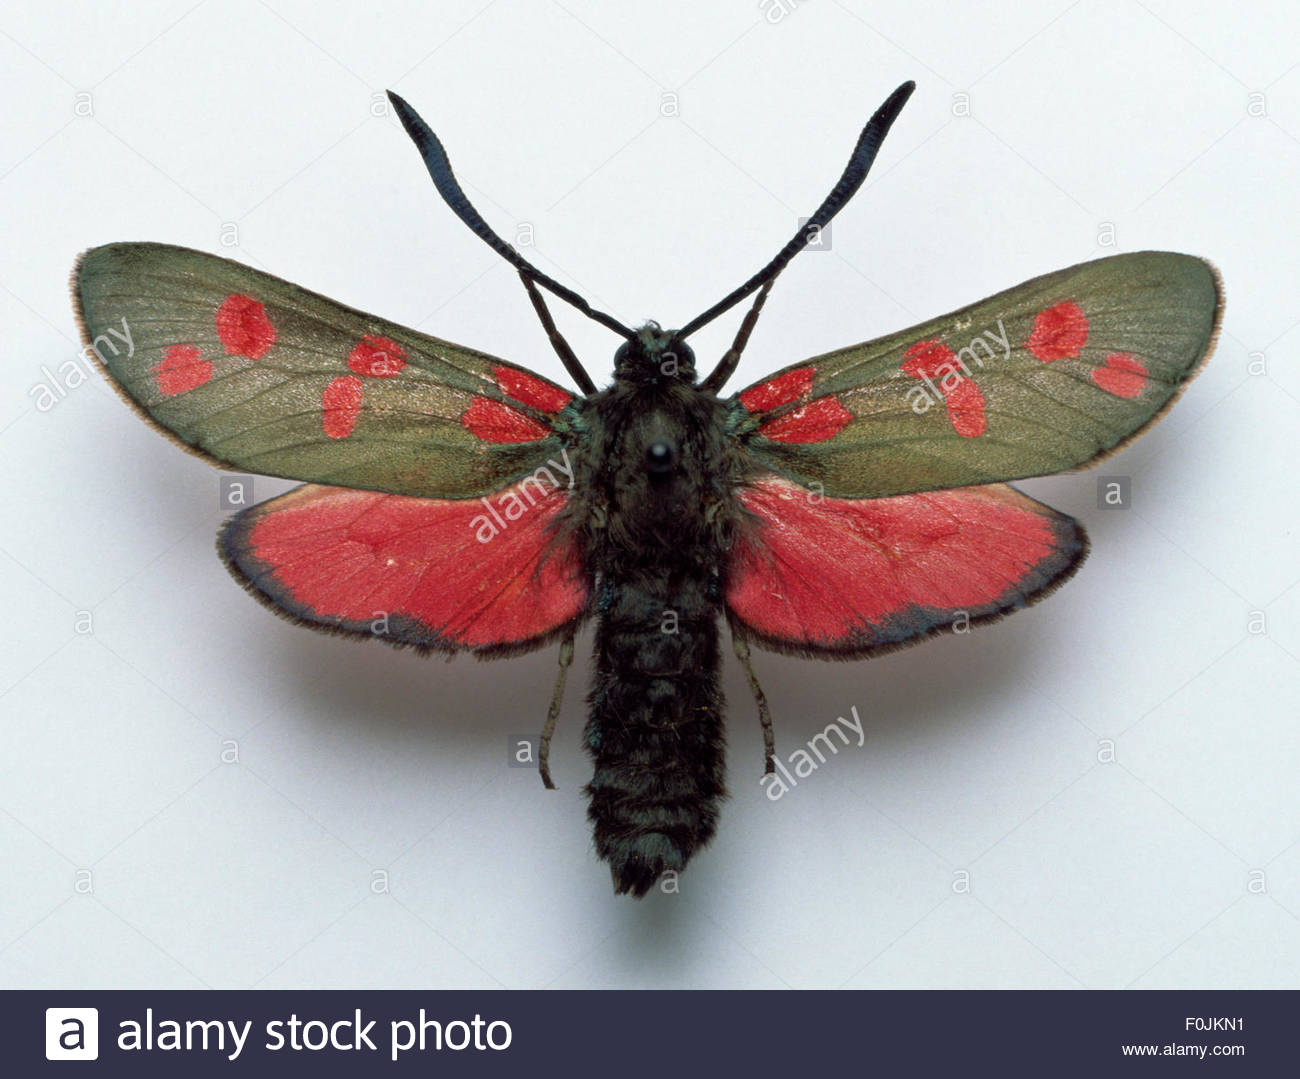 Zygaena filipendulae Six-spot Burnet mounted female moth striking six spot burnet moth with red hindwings and forewing - Stock Image